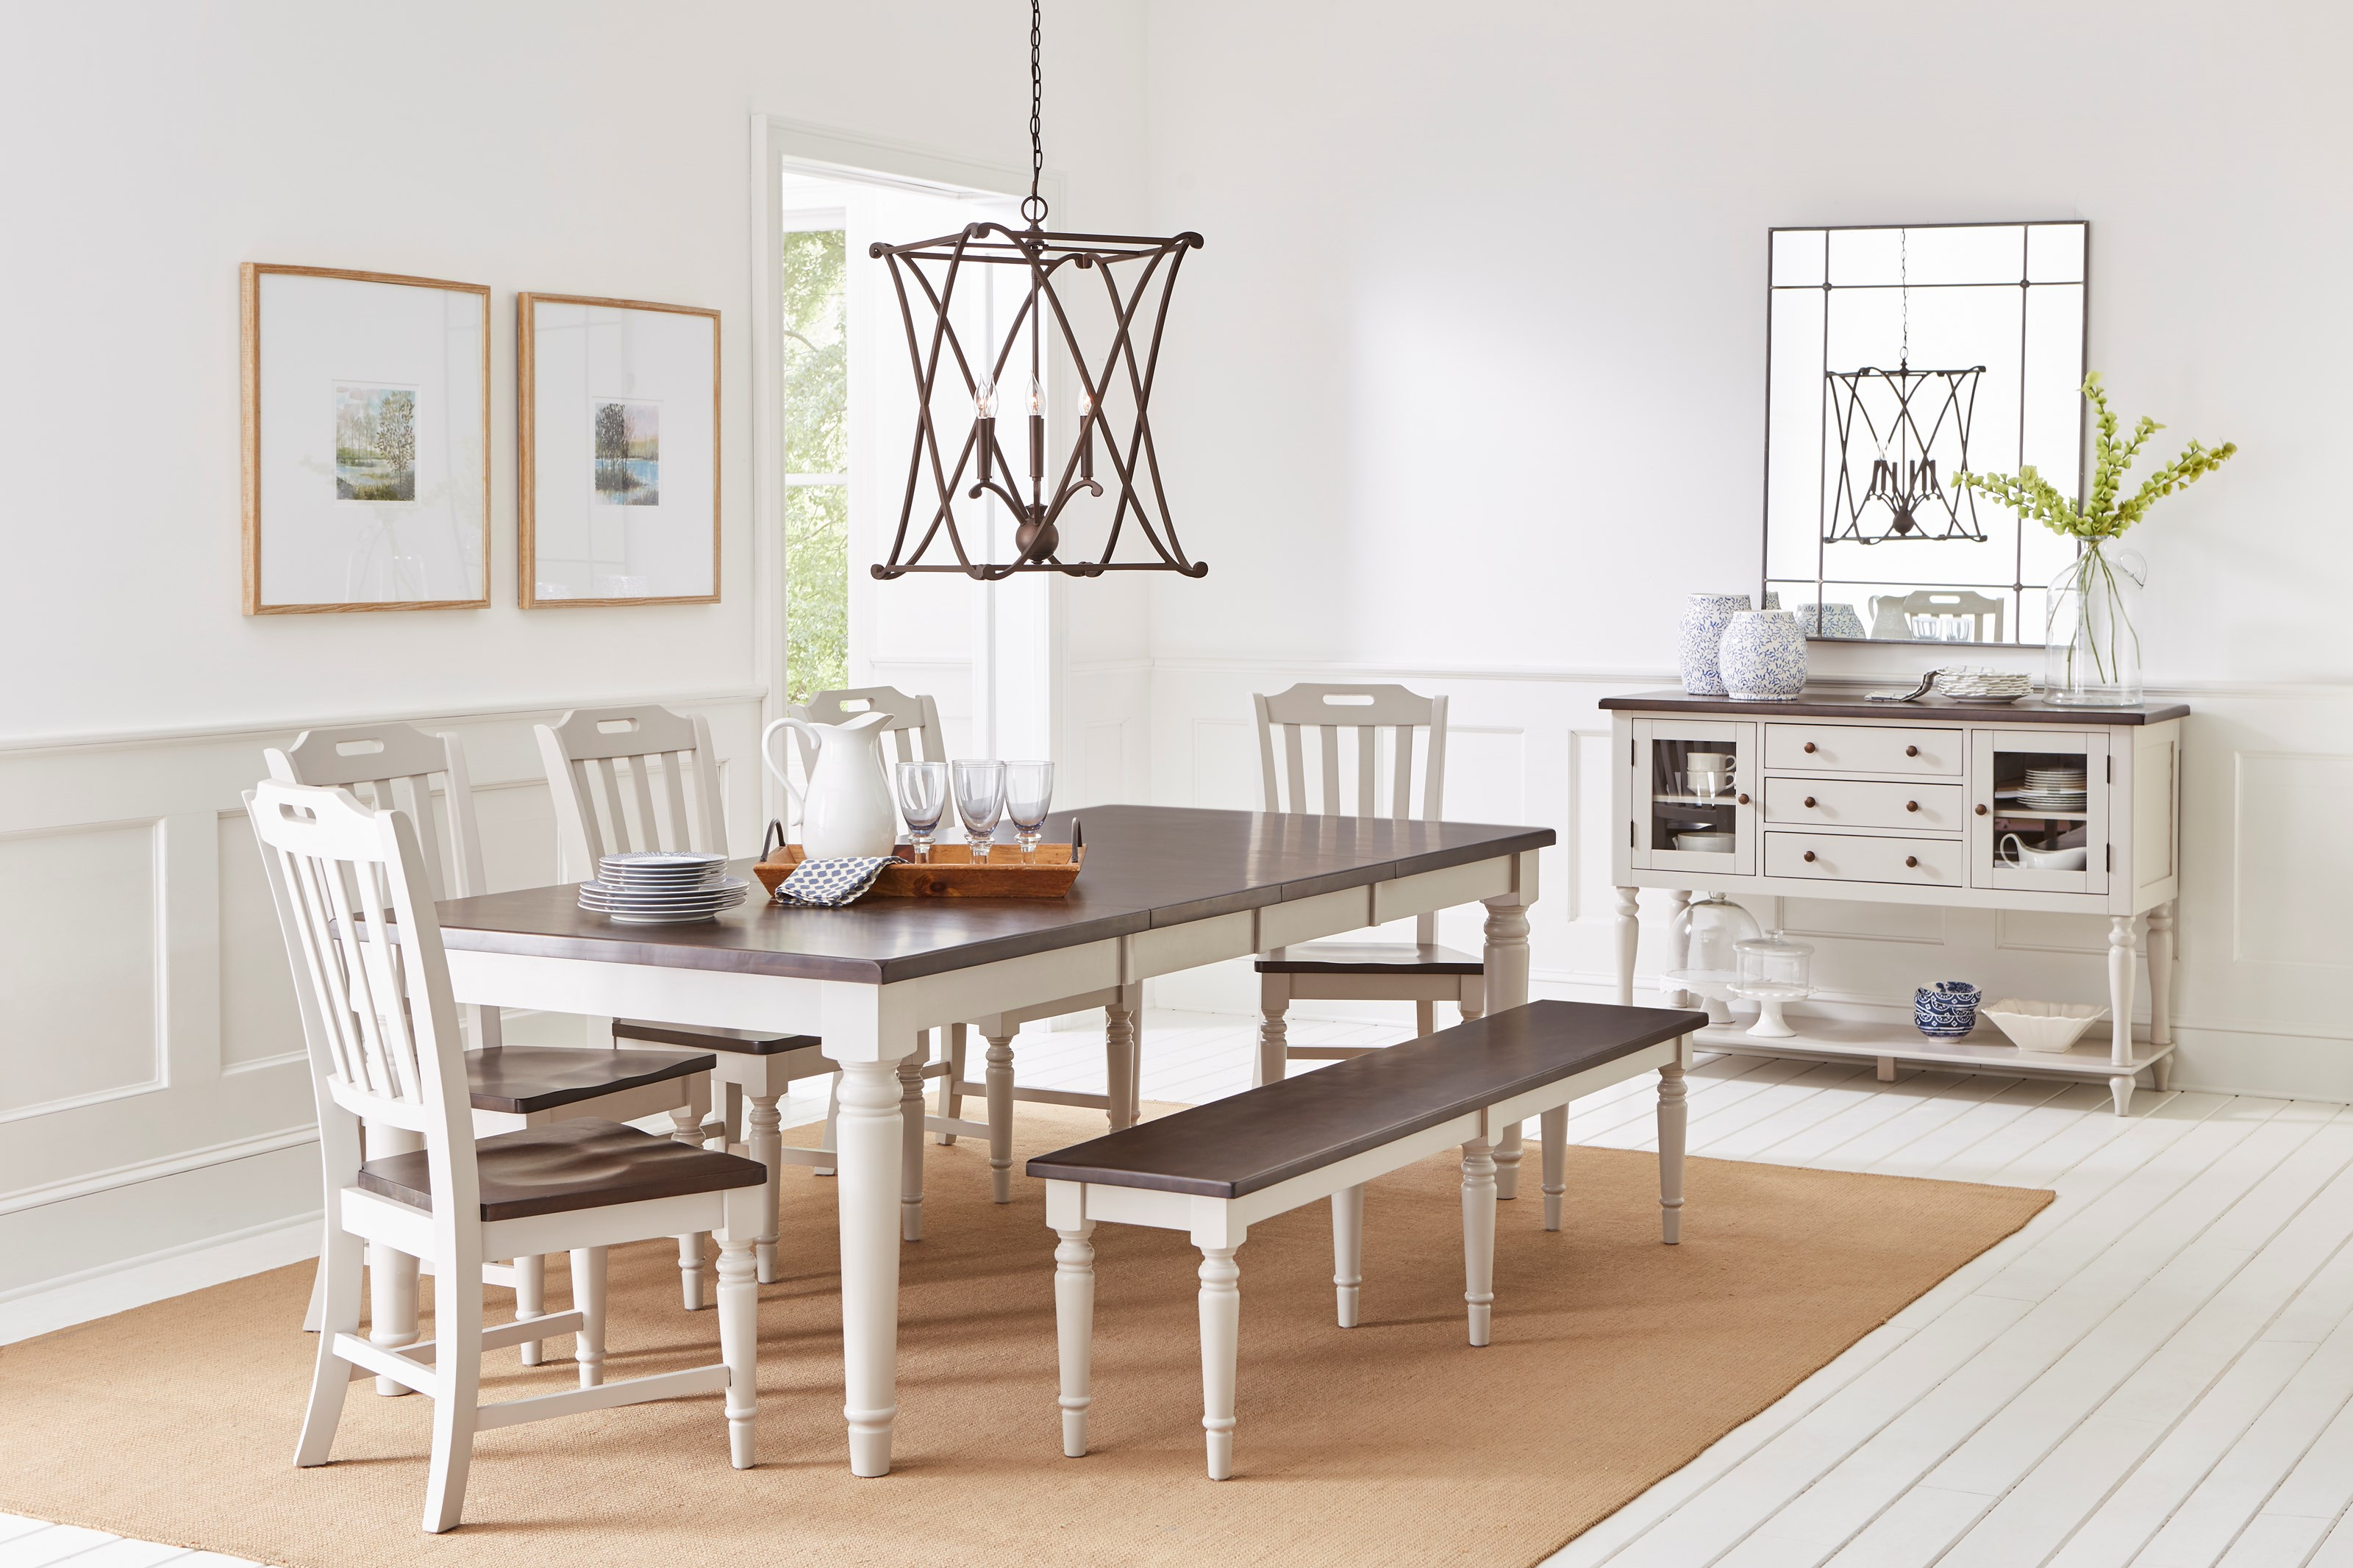 Dining Table with 6 Chairs and Bench